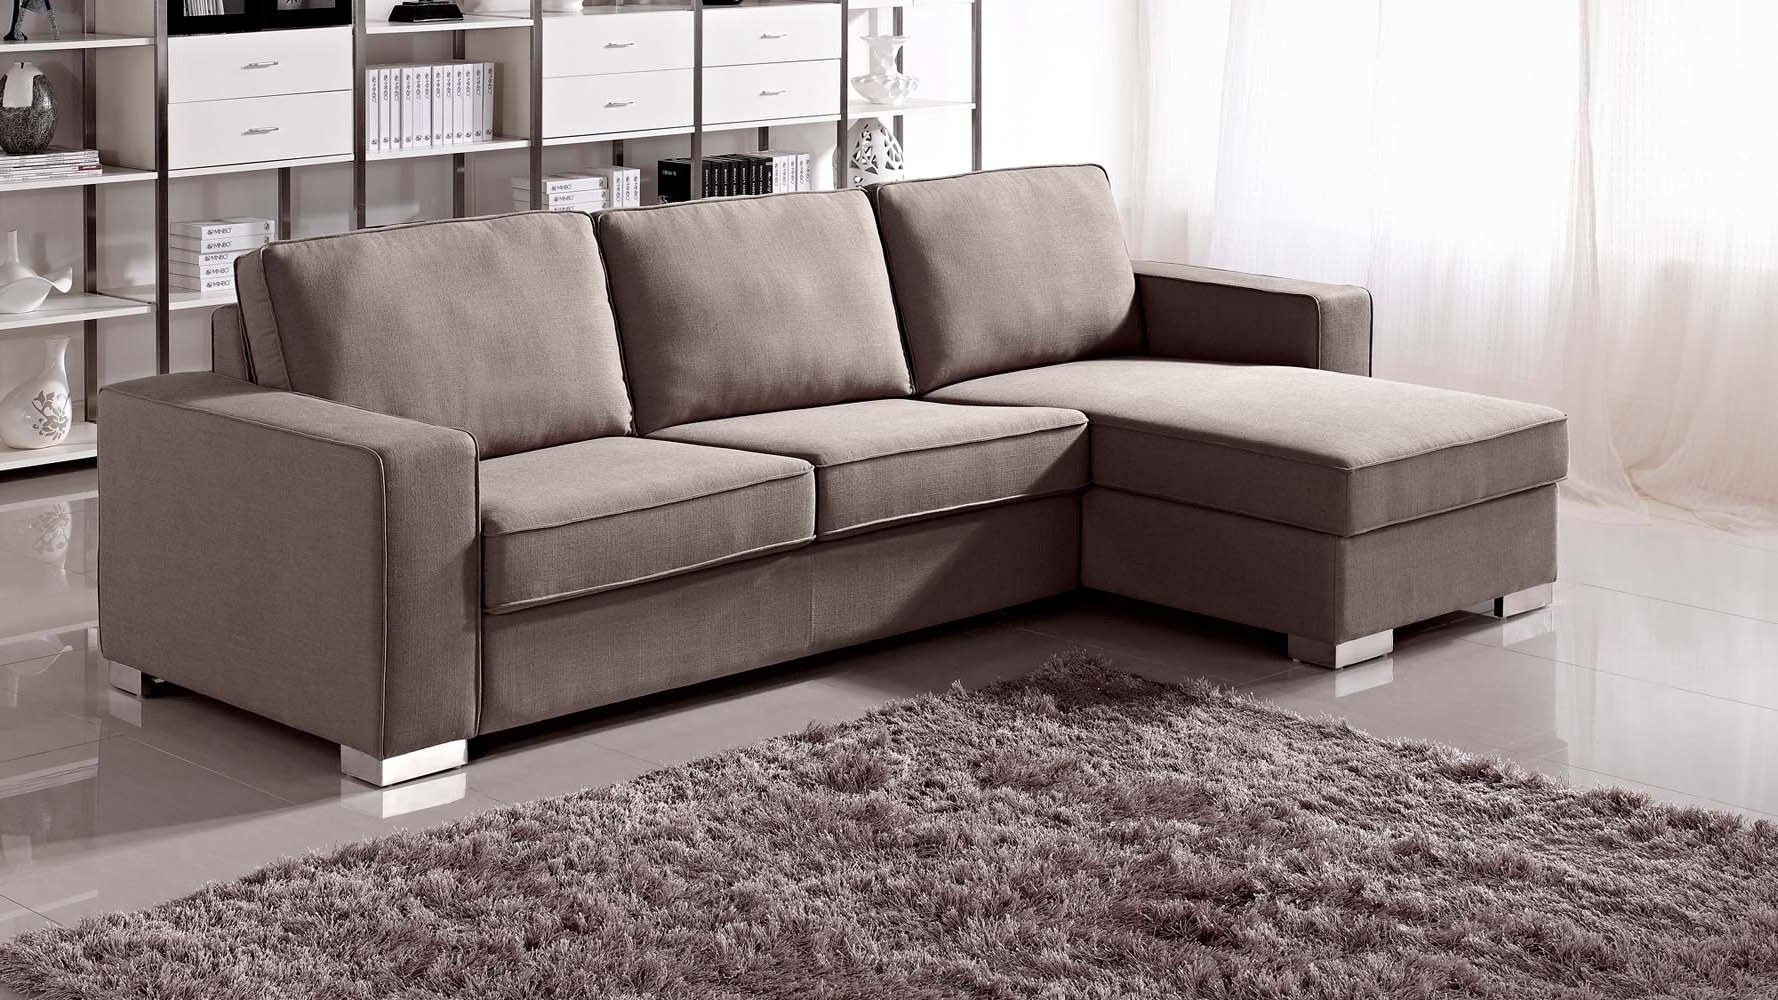 2019 L Shaped Sectional Sleeper Sofas Regarding Innovative Sofa Sleeper Sectionals Beautiful Interior Design Style (View 1 of 20)